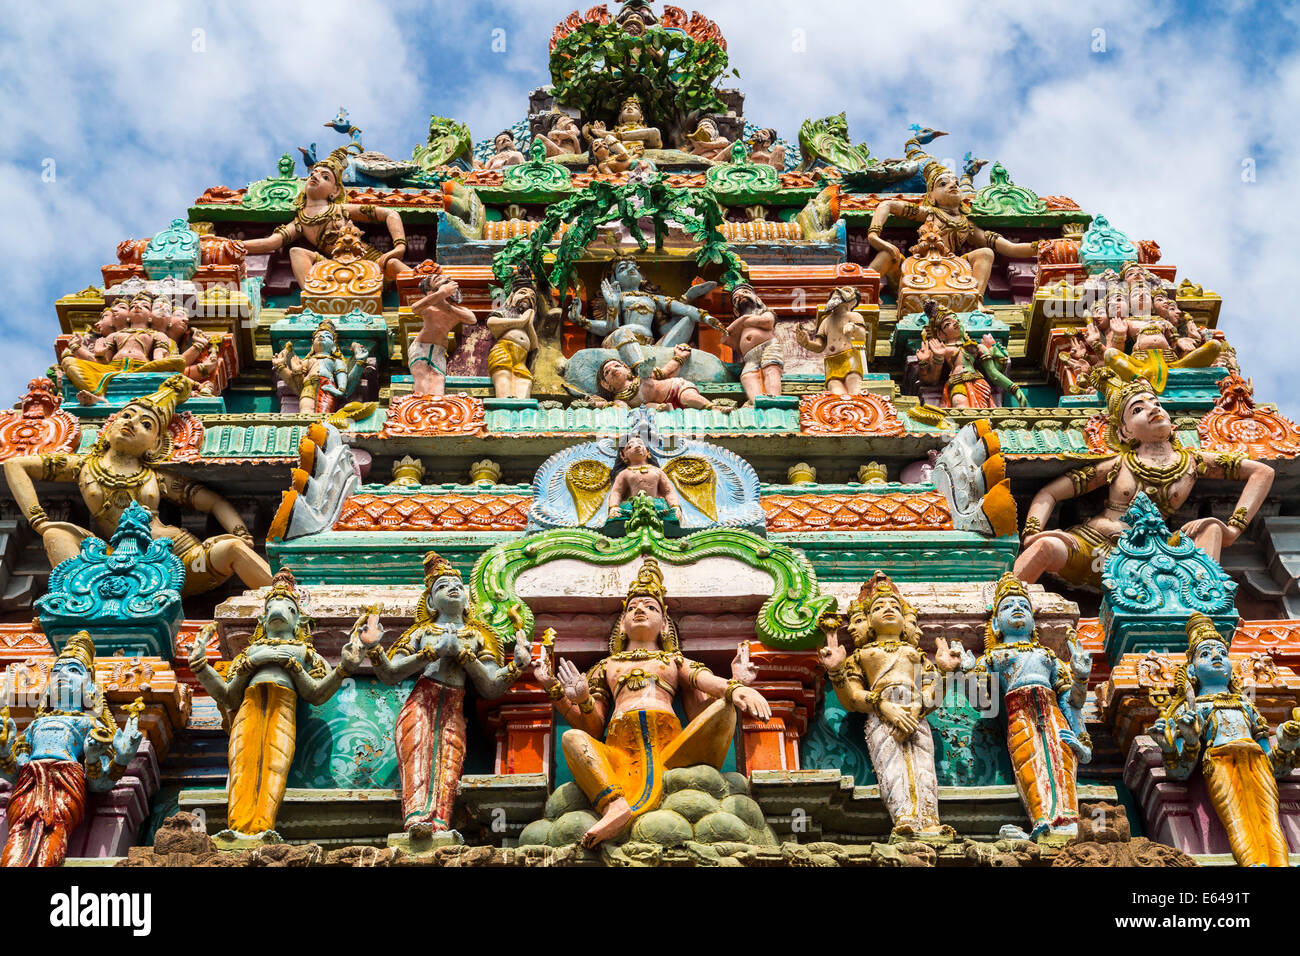 Kapaleeswarar Hindu Temple, Chennai, (Madras), Tamil Nadu, India Stock Photo